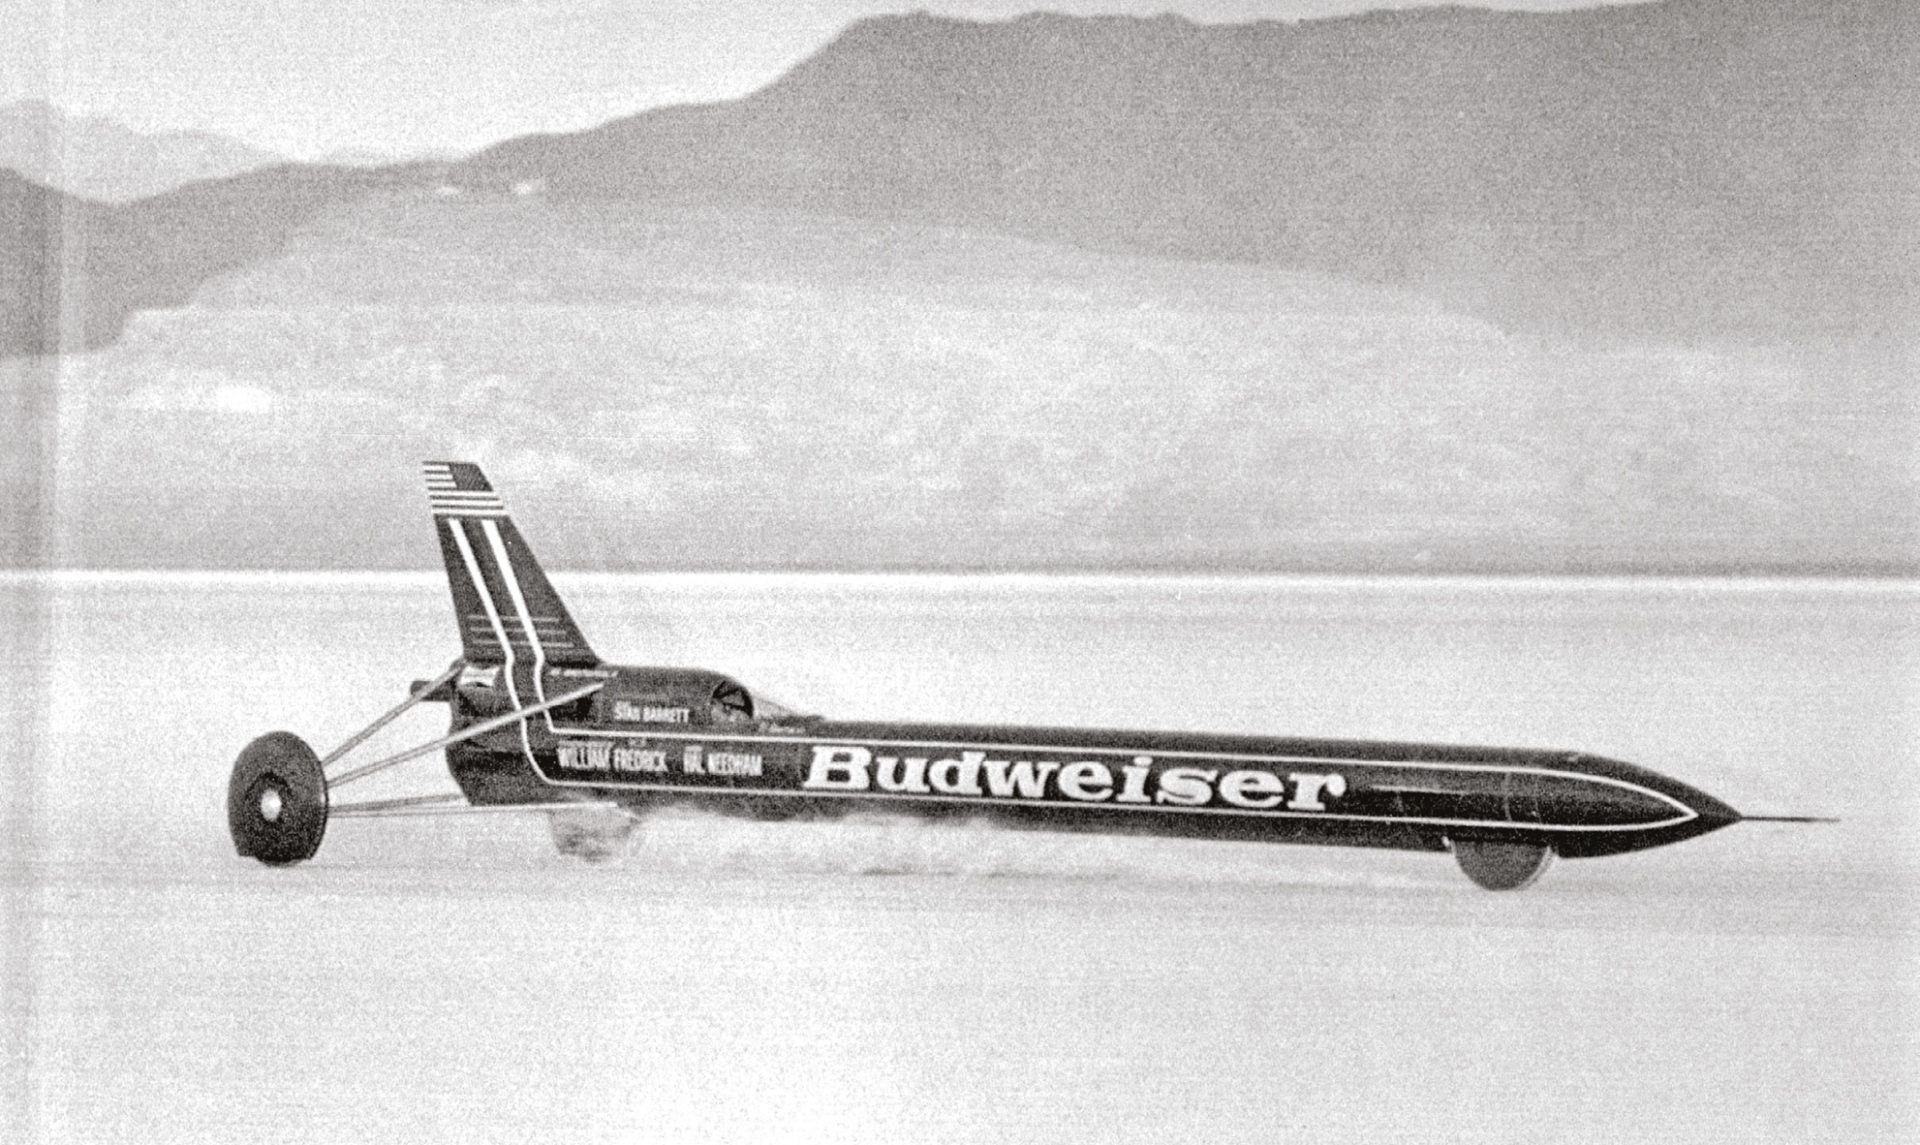 The Rocket first ran at Bonneville Salt Flats before moving to the more hard-packed surface of Edwards Air Base